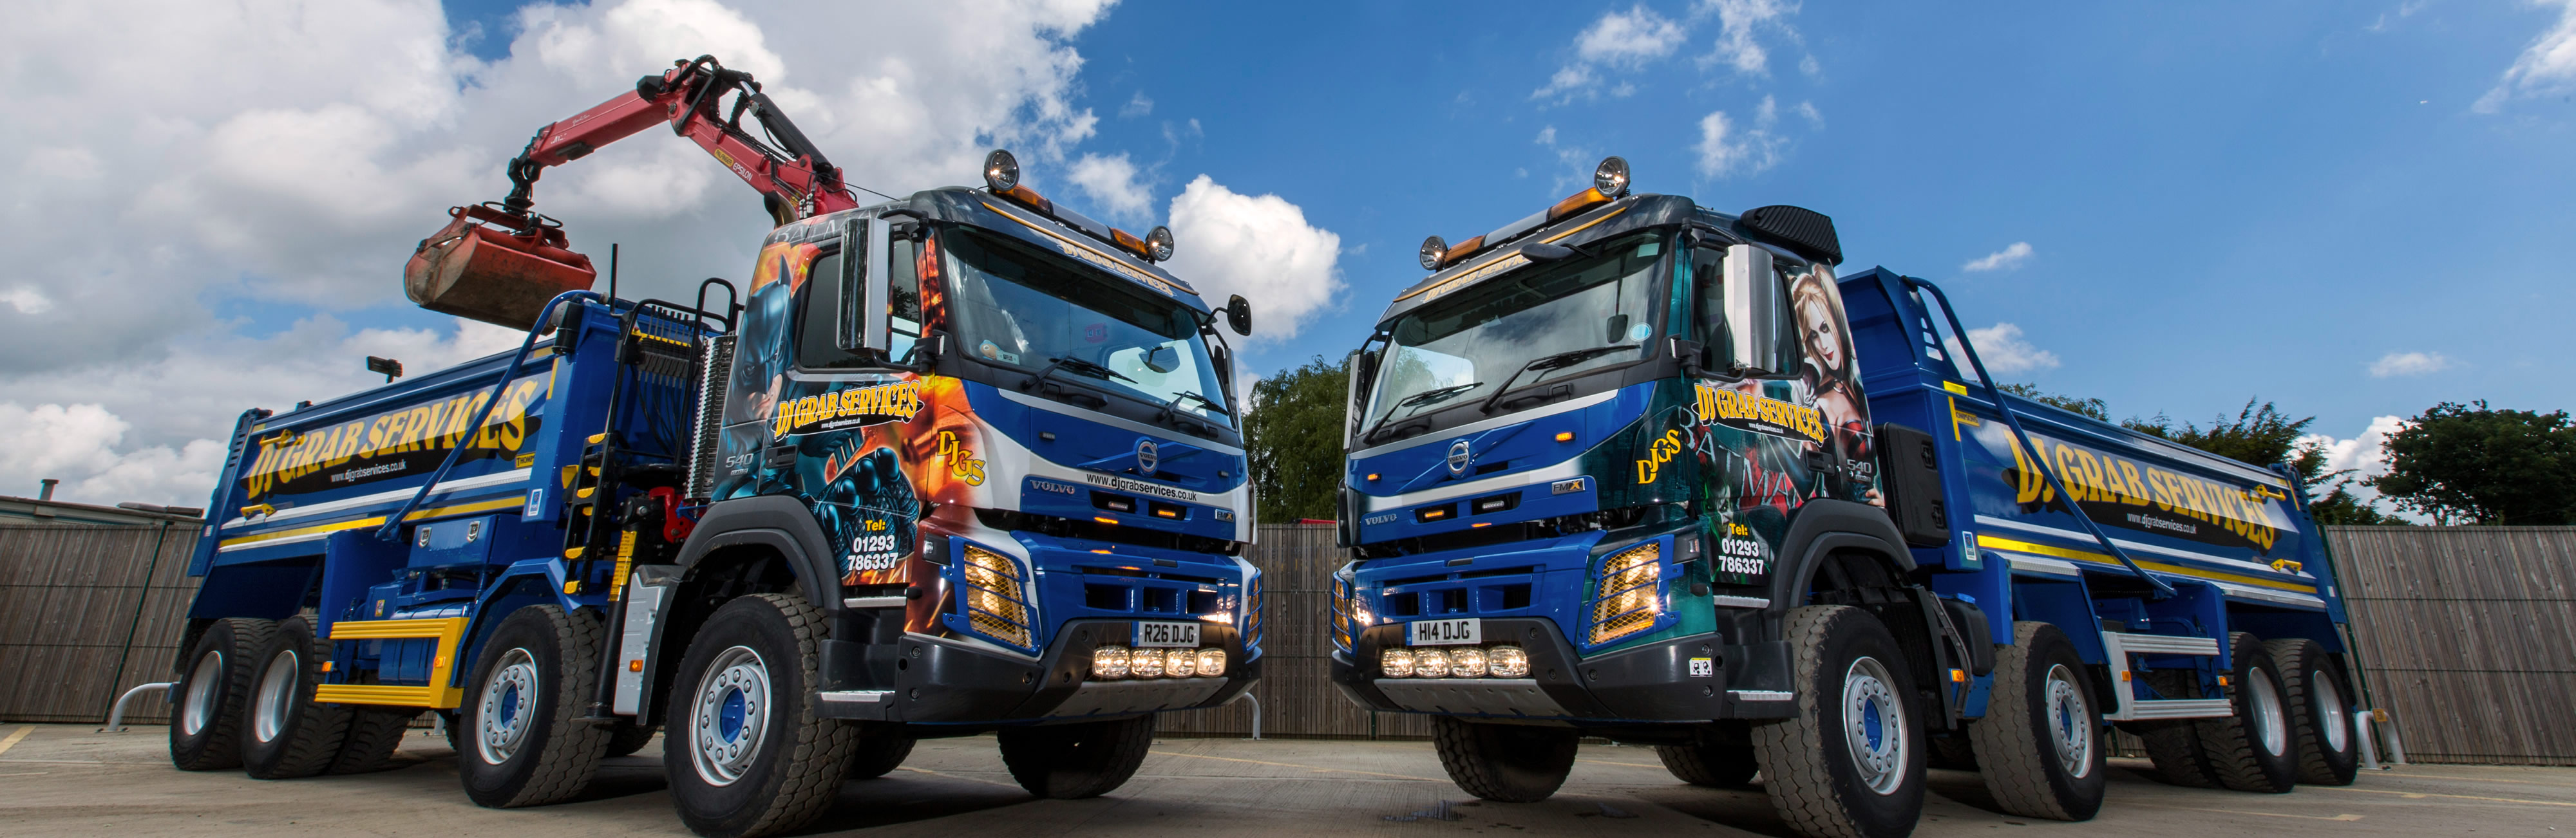 Grab and Tipper lorry hire for Surrey Sussex and London